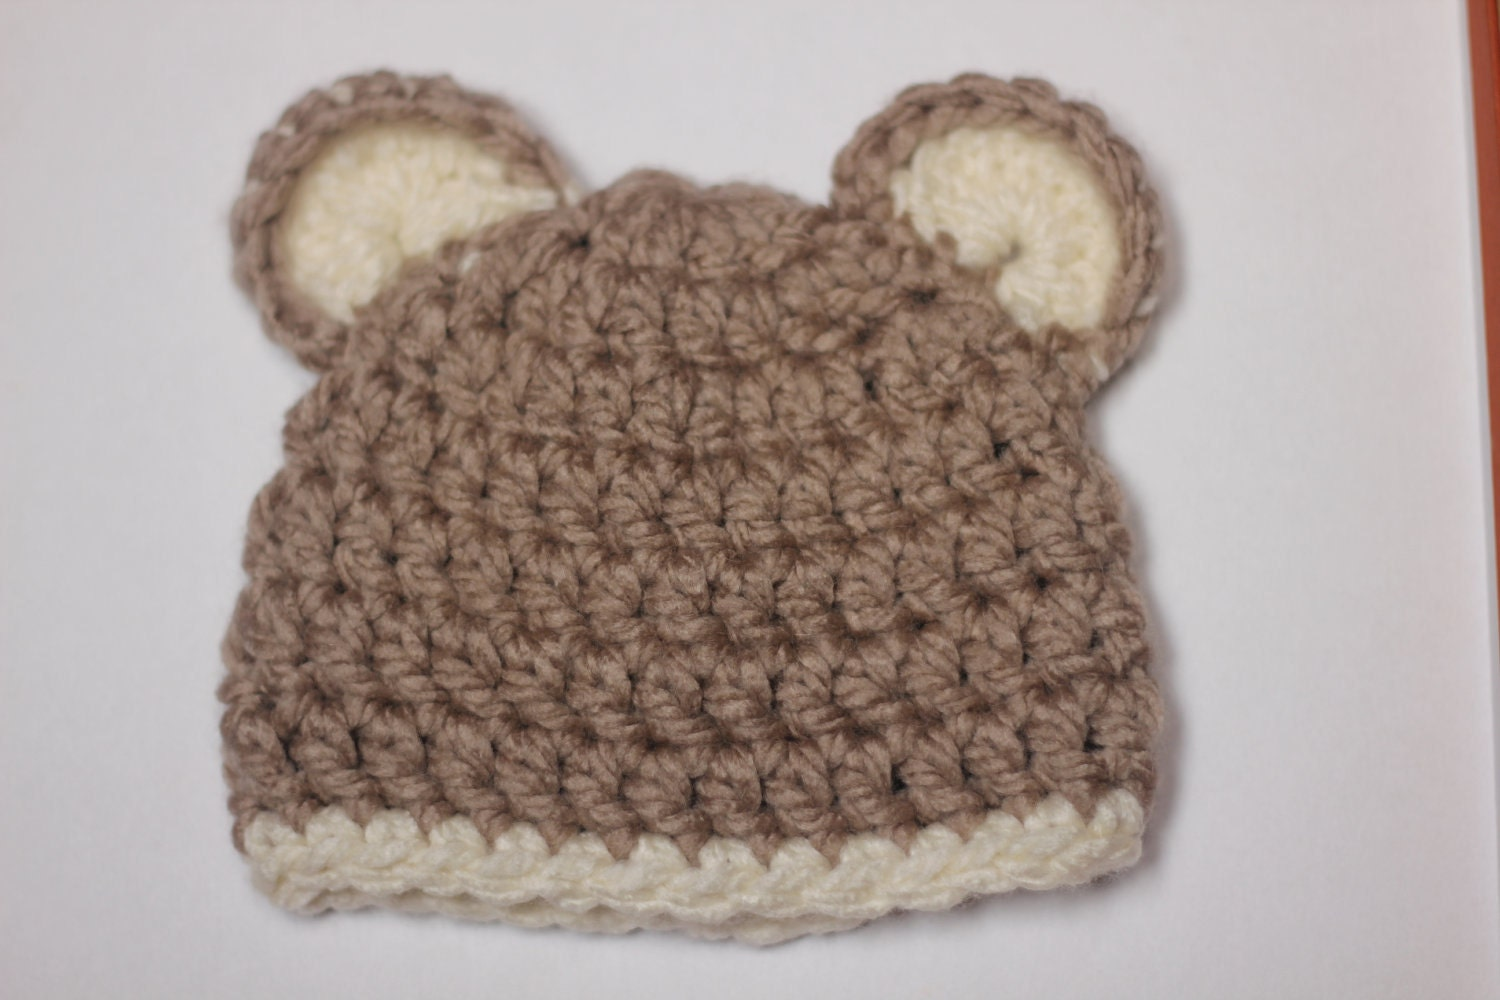 Crochet Pattern For Baby Hat With Ears : crochet baby hat bear ears chunky beanie by snugglebugglebabe